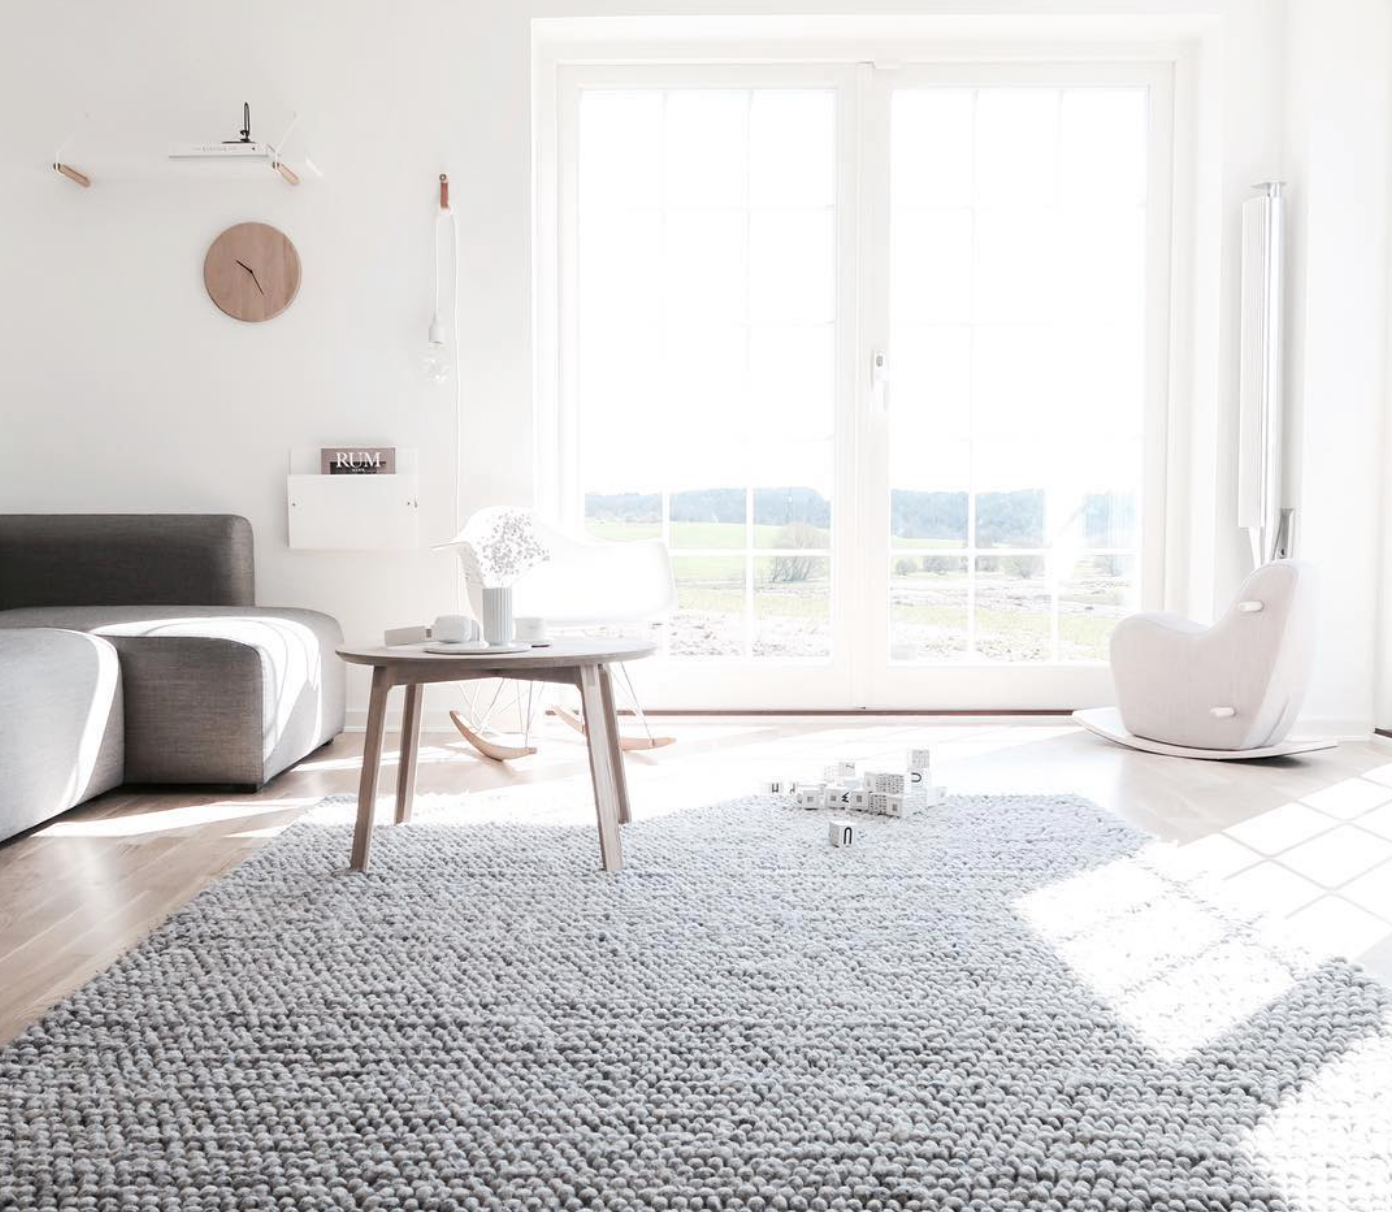 Total White BeoLab 18 In This Nordic Interior Shared By Lillely On Instagram